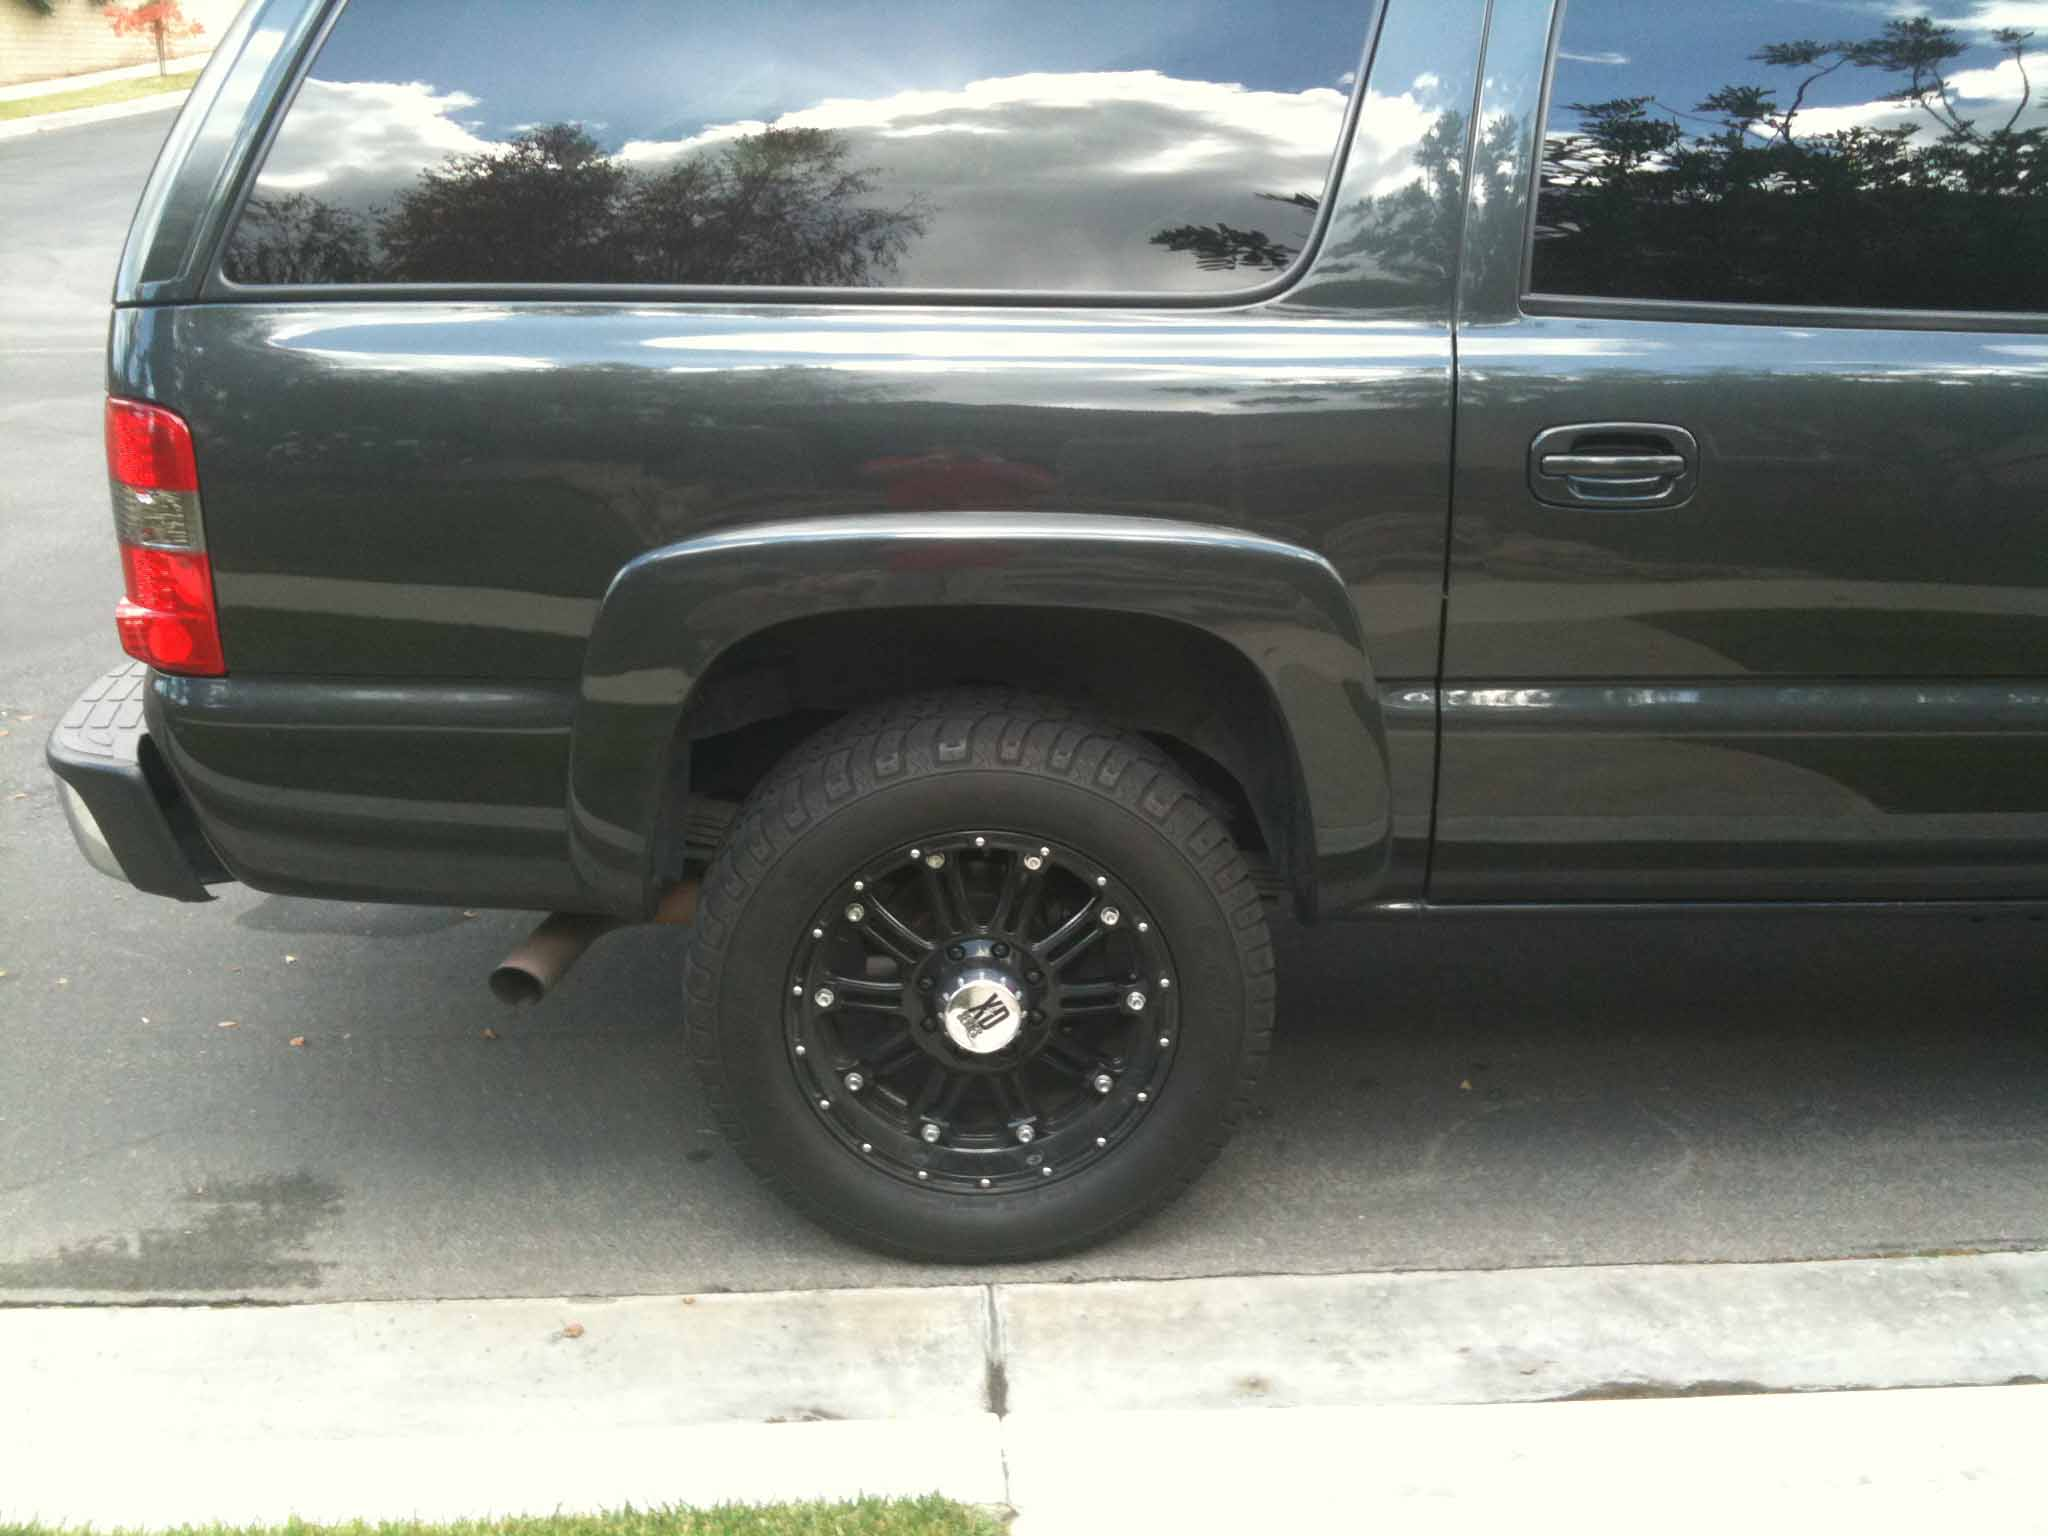 Cheap Mud Tires For Trucks >> Biggest Tires That Fit A 1996 Suburban | Autos Post